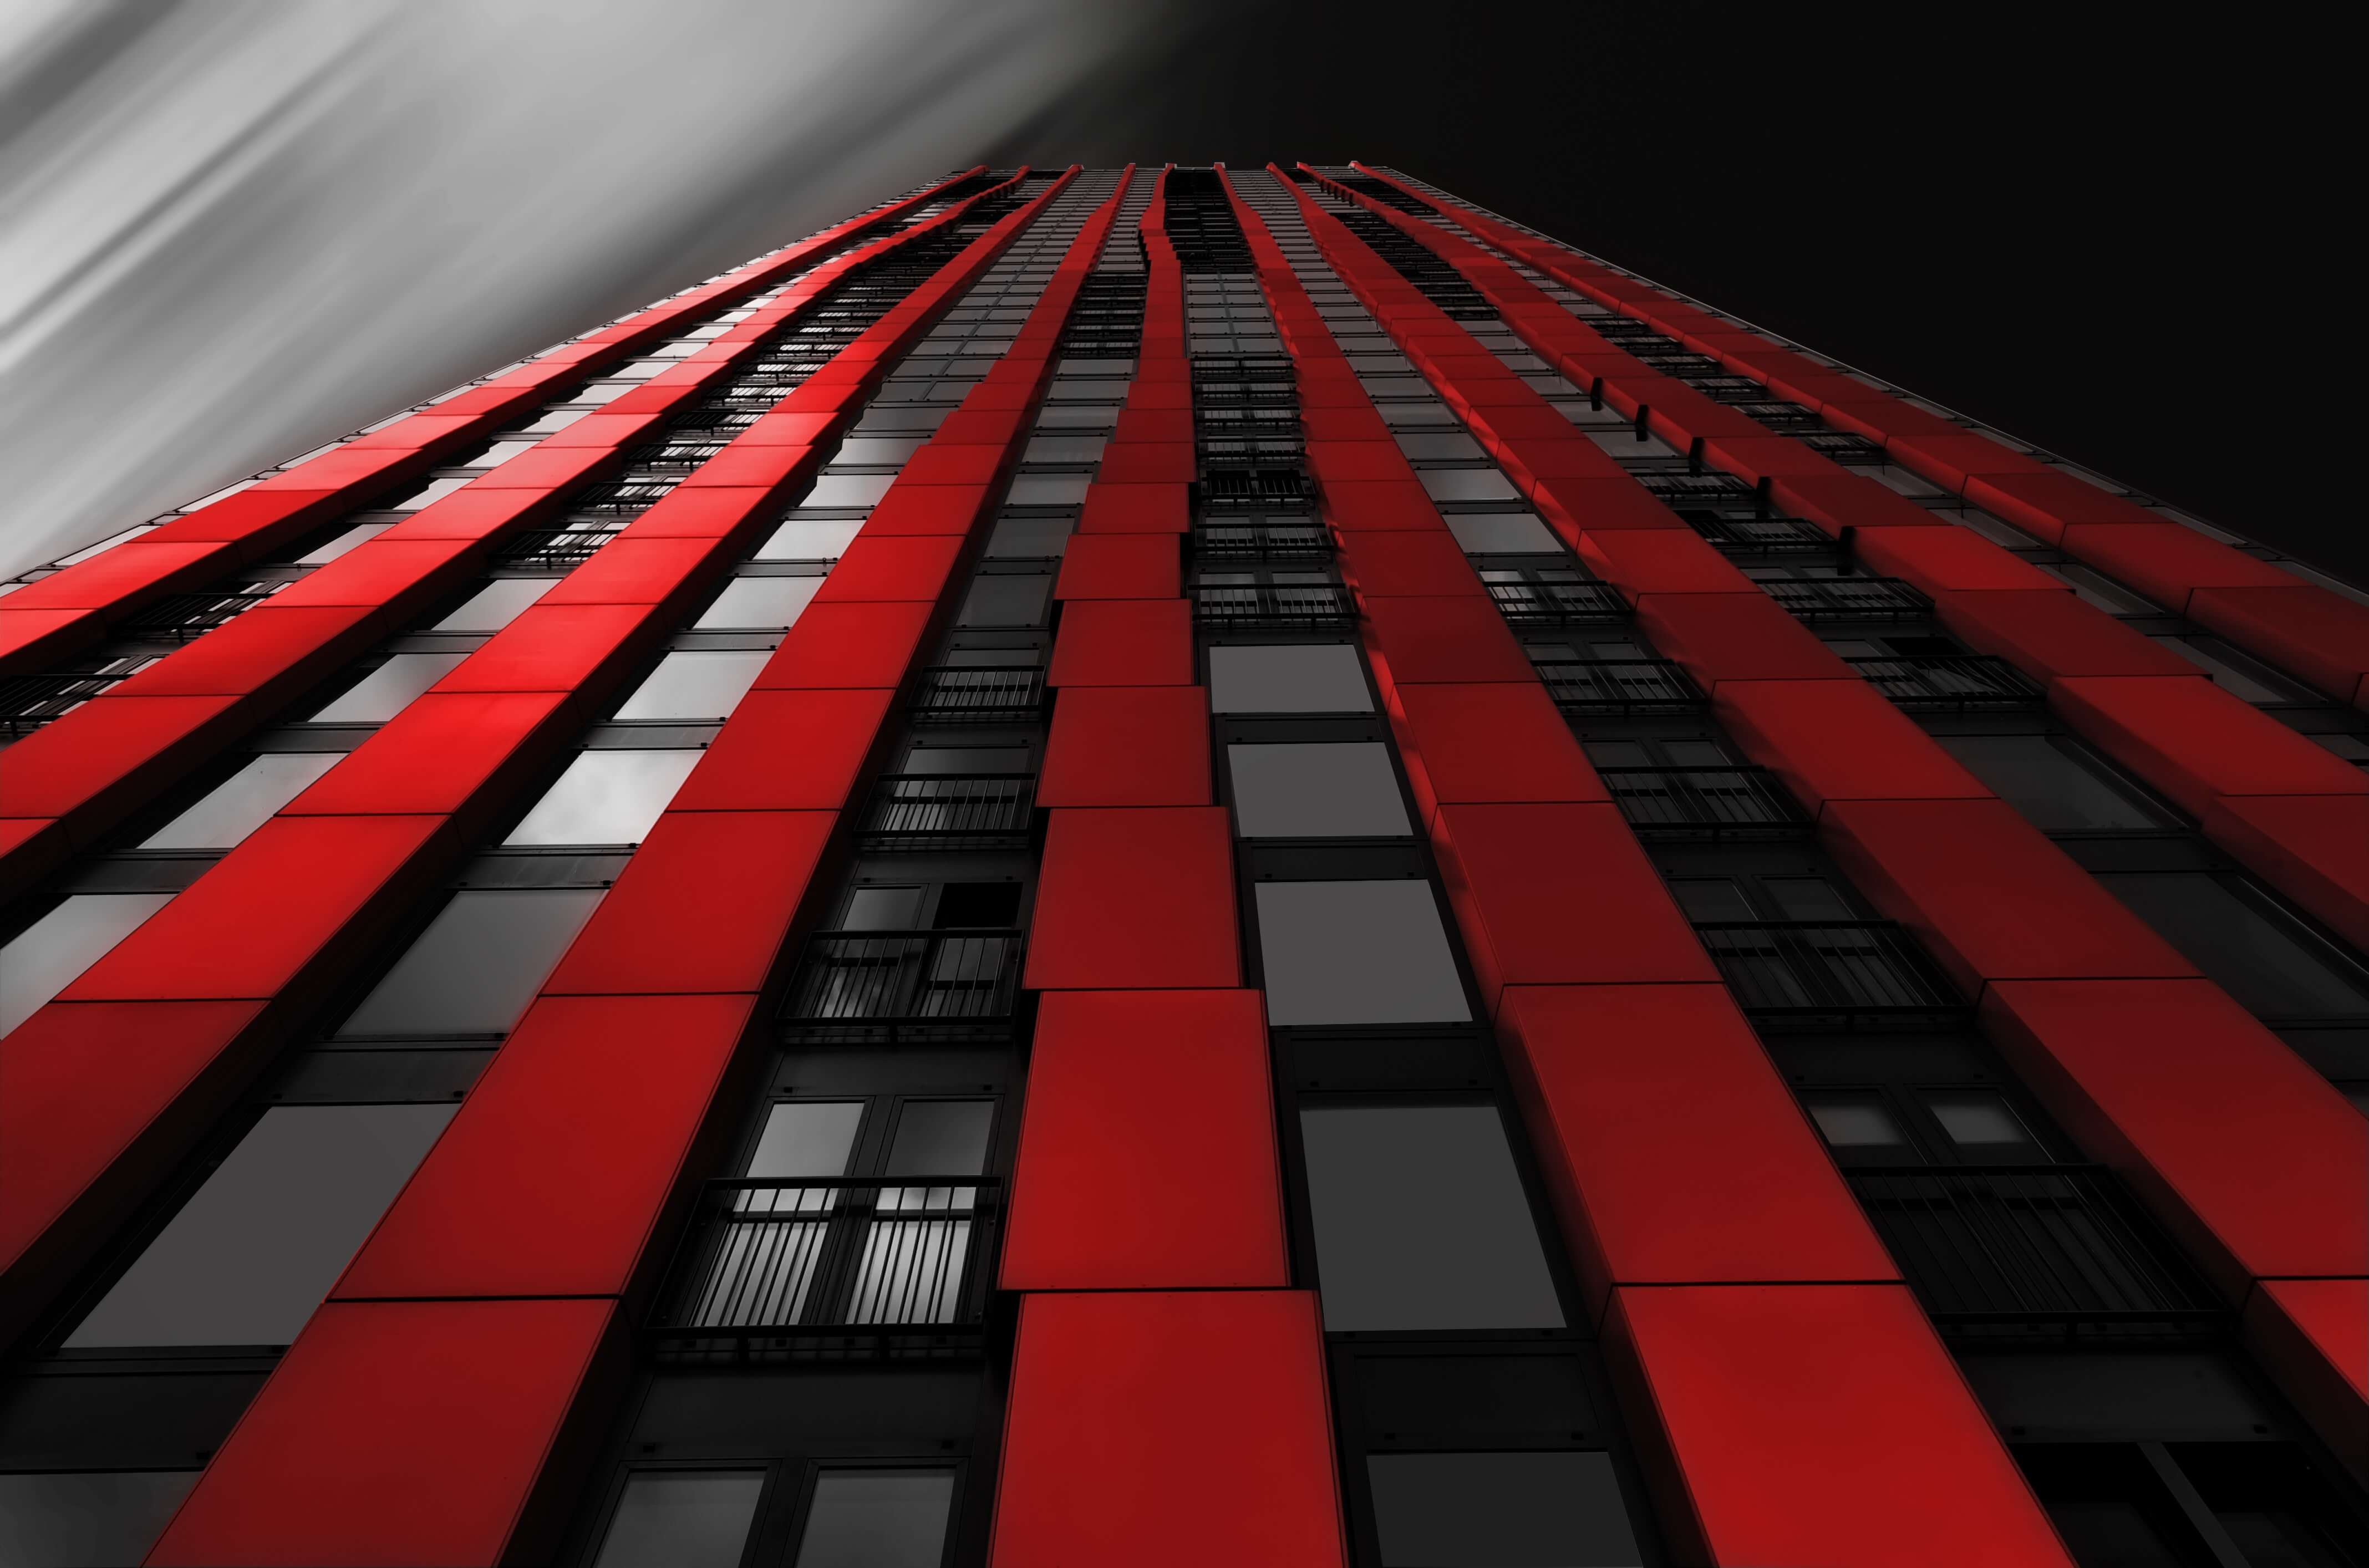 Tall towering building with red panels running in columns